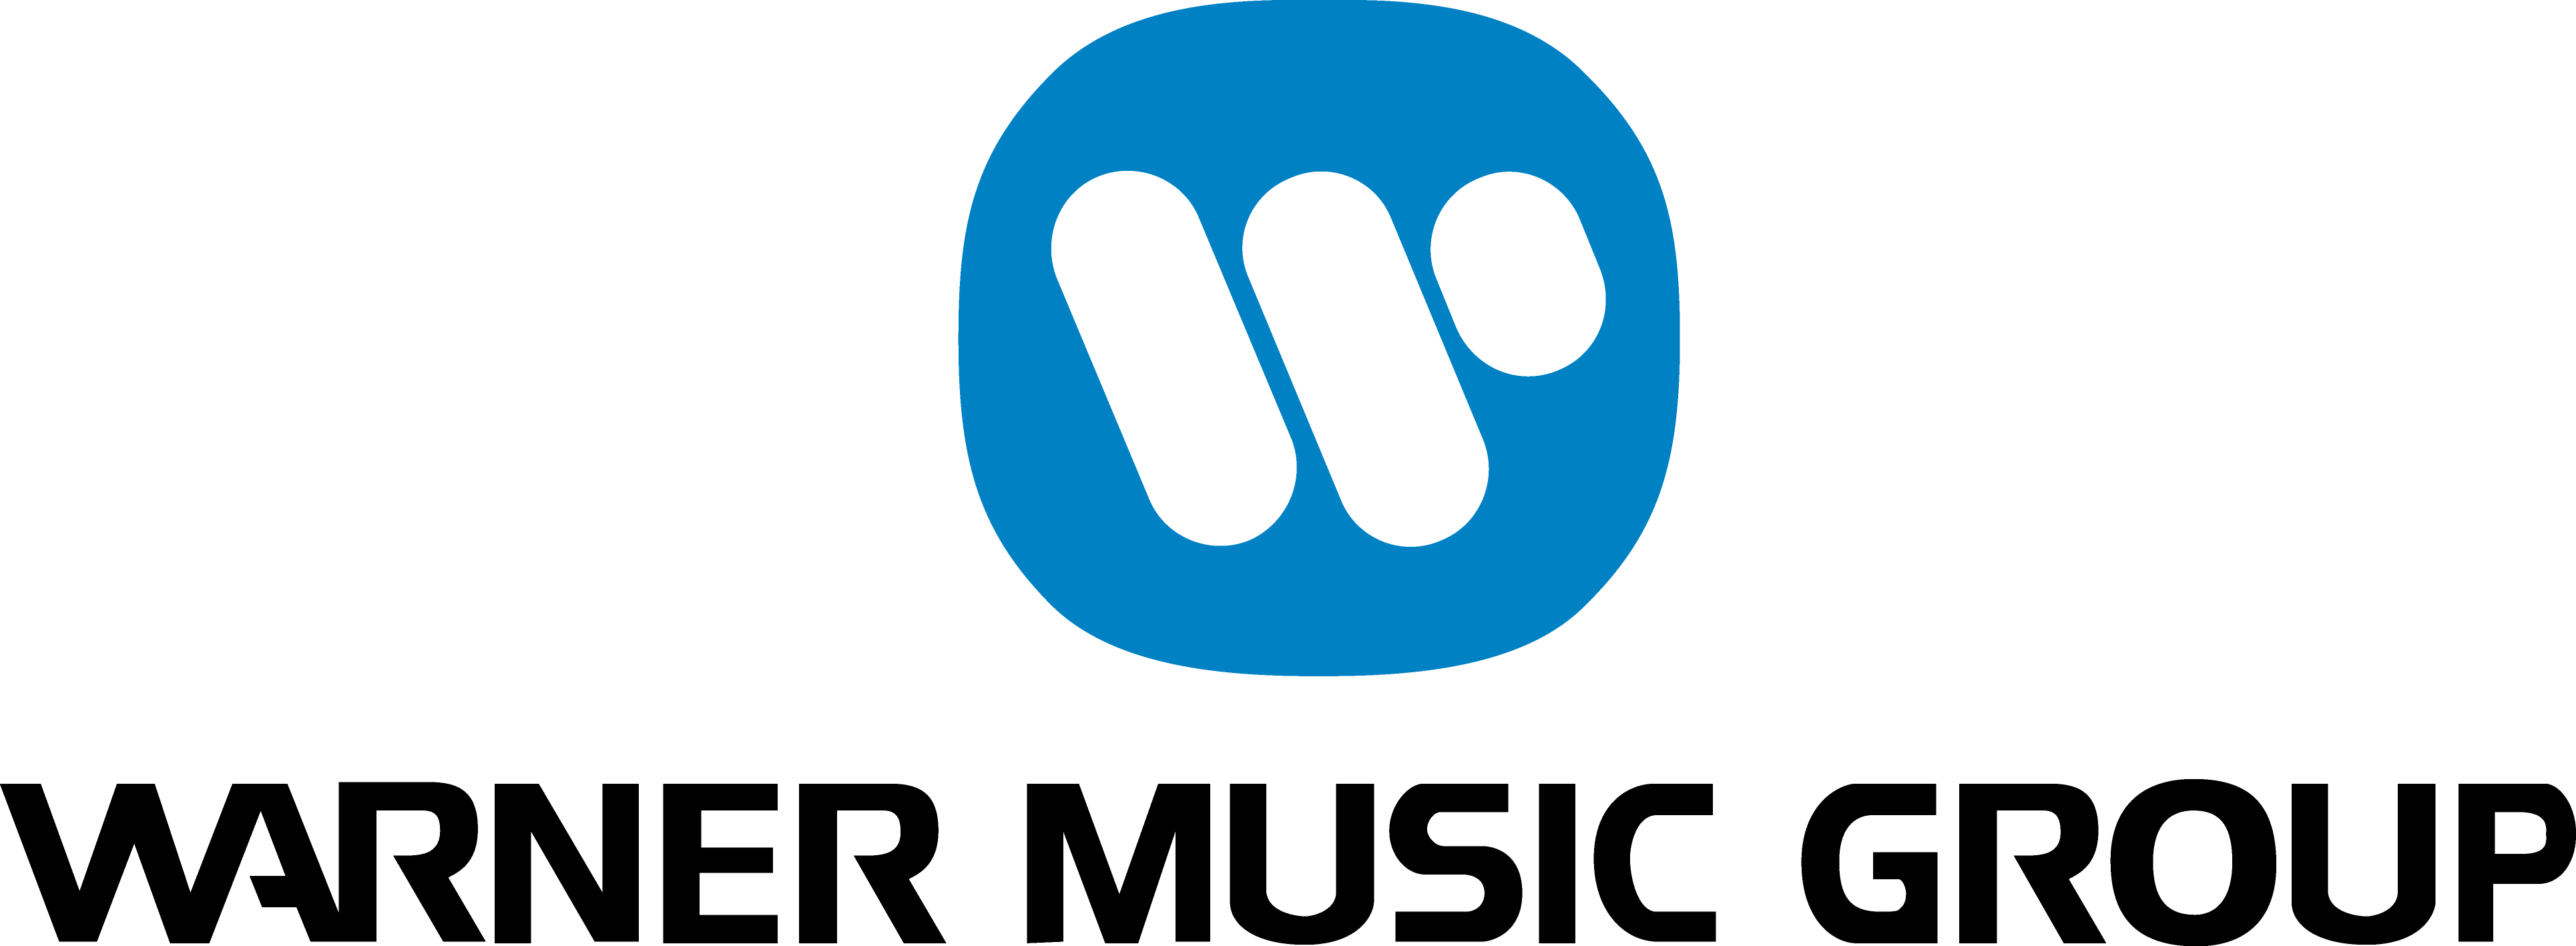 Warner Music Group | Logos | Pinterest | Warner music ...